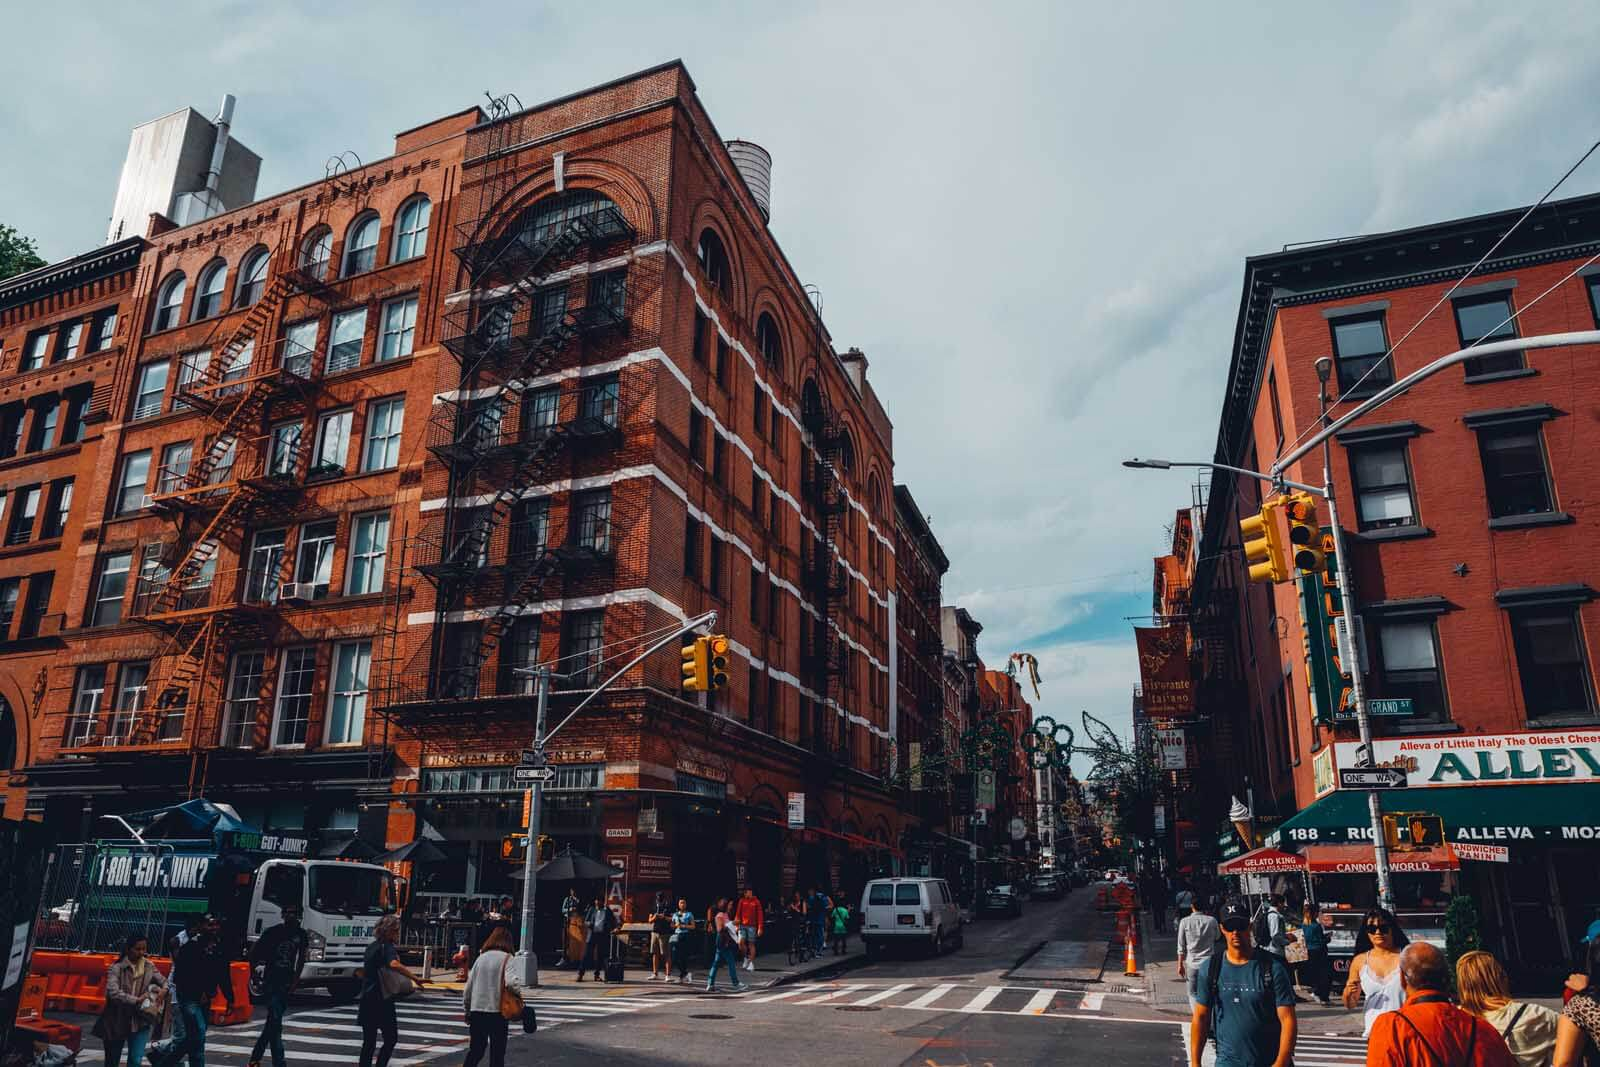 Where Nolita and Little Italy Meet in NYC